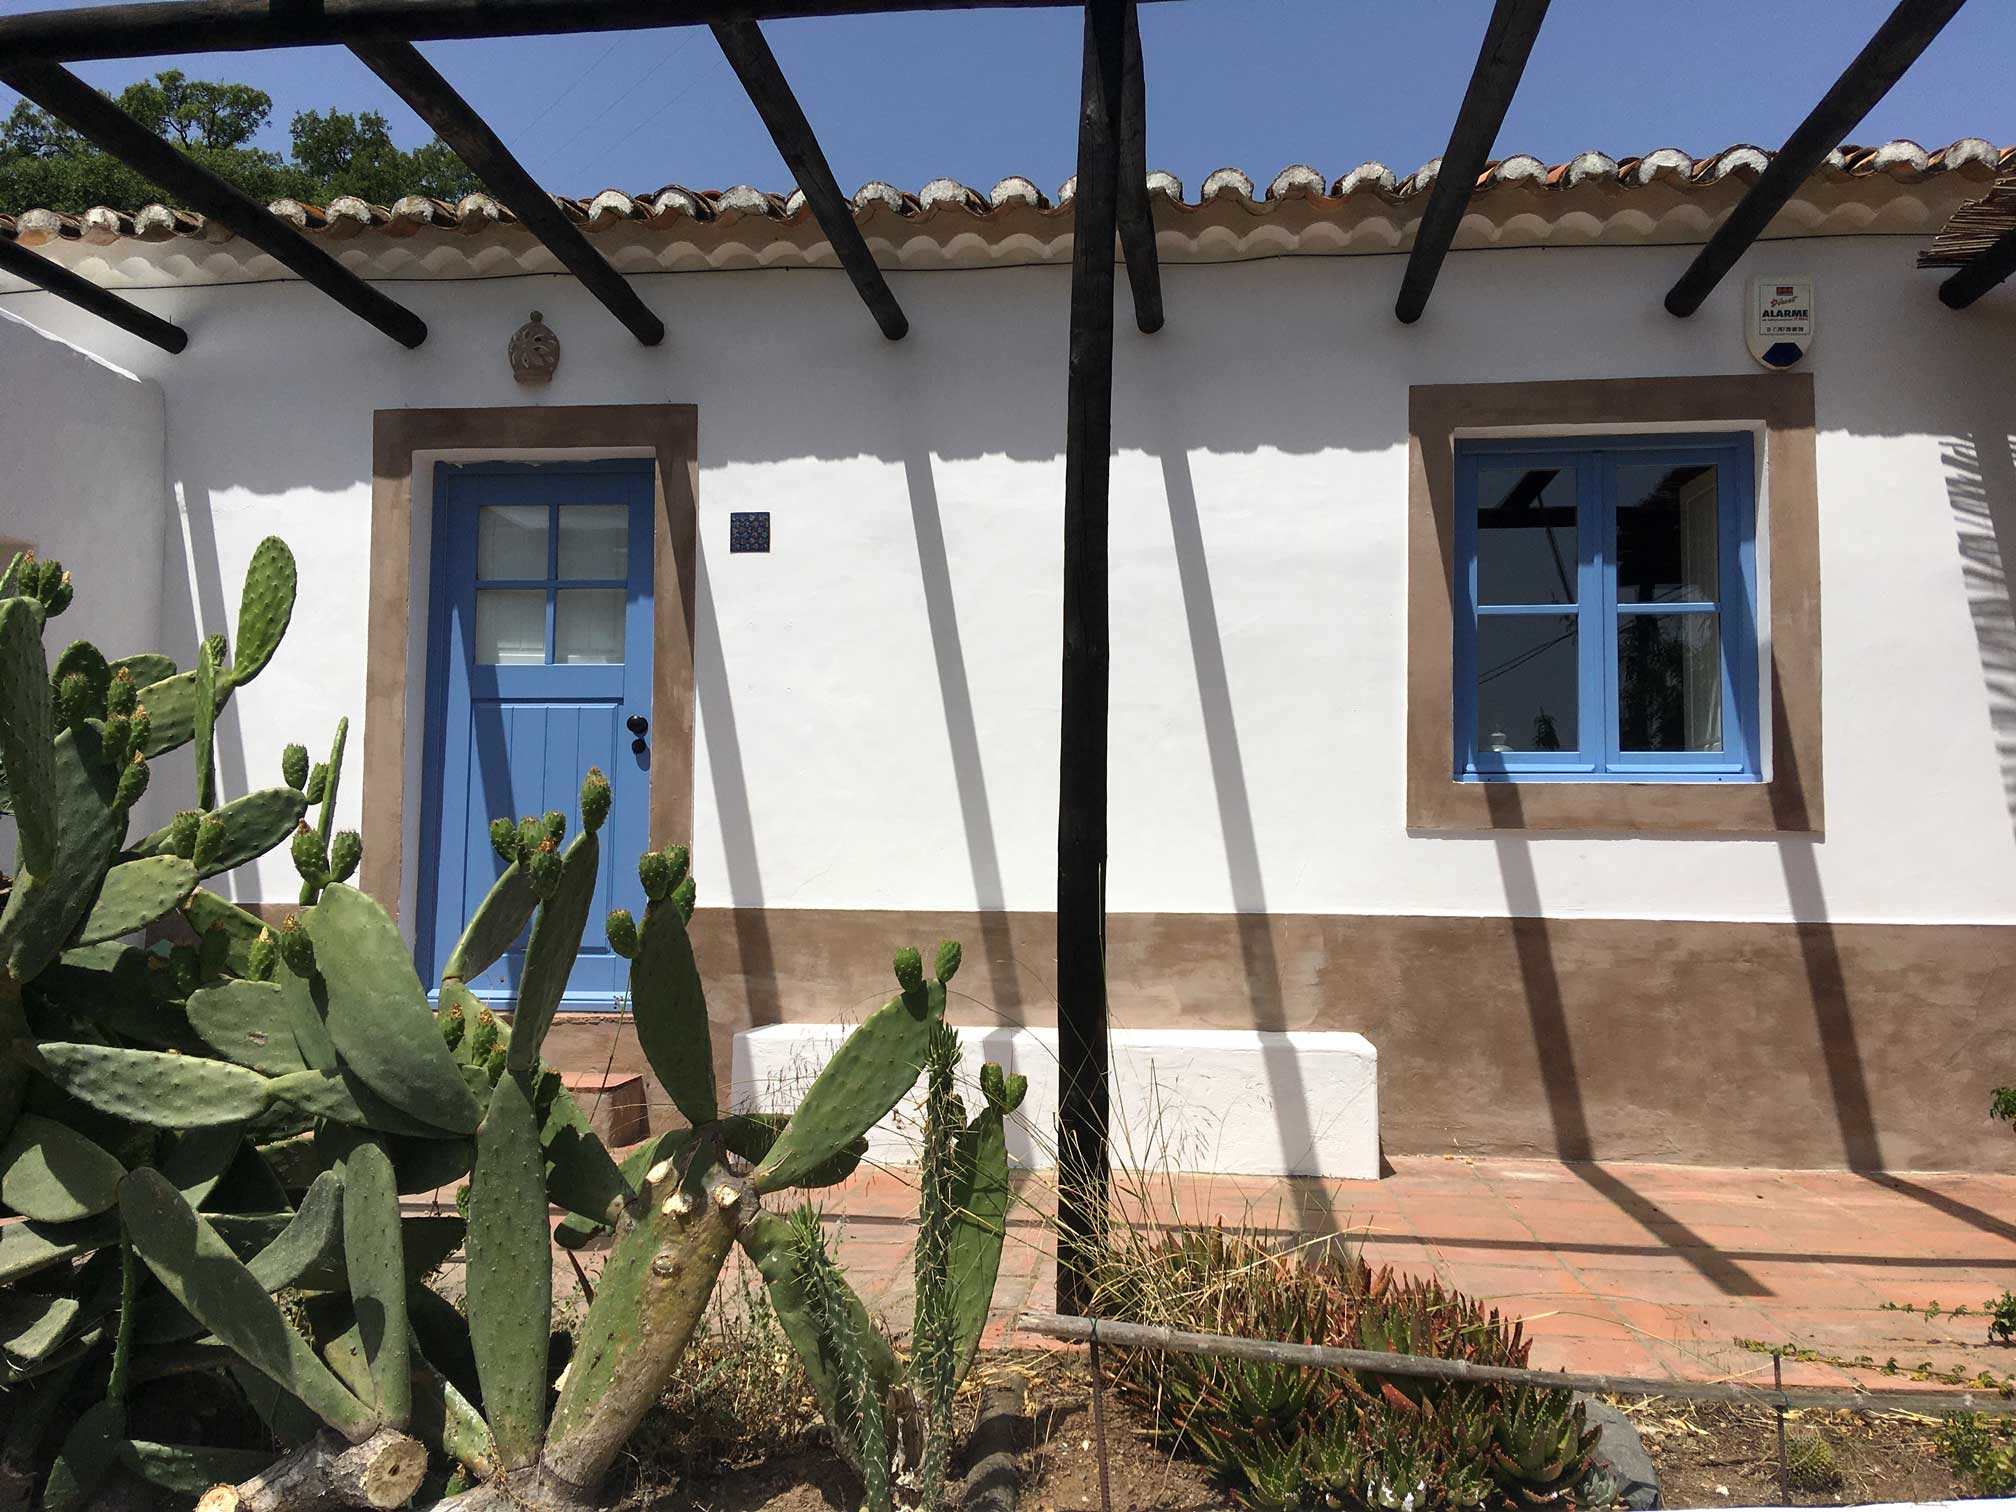 Casa Alcaria is a eco tourism located in a beautiful valley in the backlands of Odeceixe. We are a small farm with animals, vegetables, fruit trees and wine.  We have individual apartments for people to stay in our land and enjoy the south-west coast of Portugal.